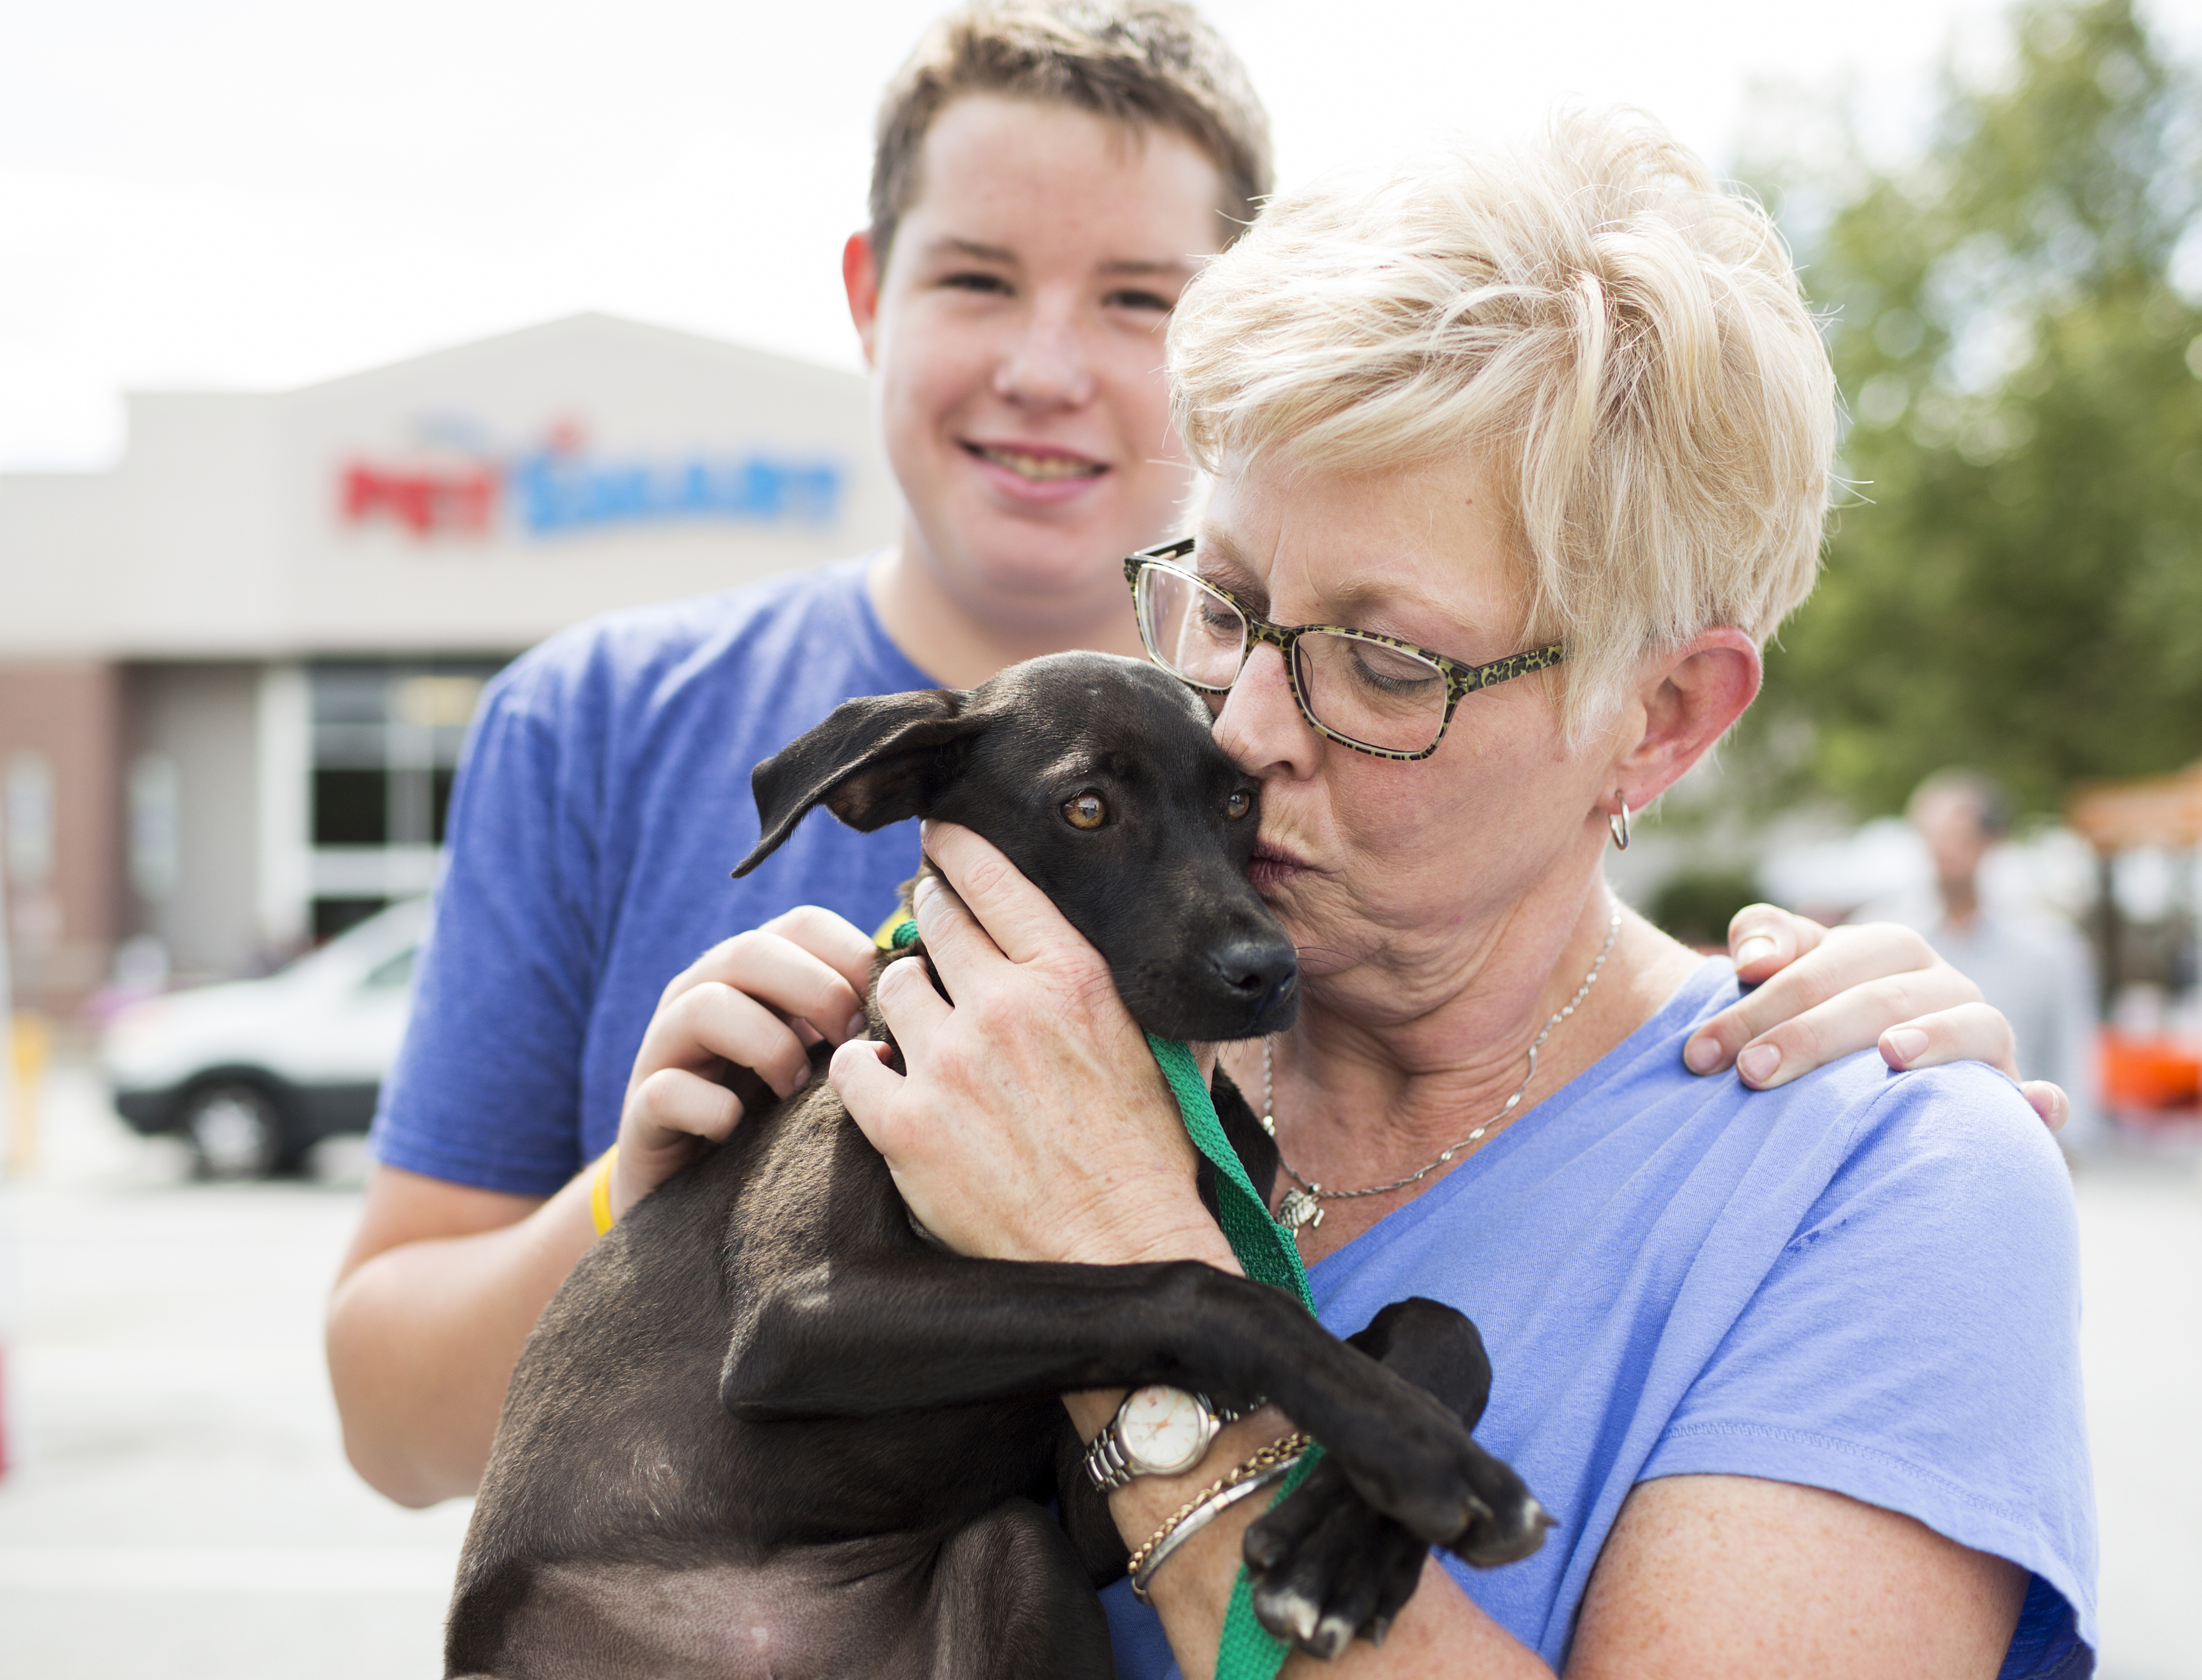 The Ballards give love to their new family member, Kate, who was adopted from a local PetSmart in Ashville, N.C., during a National Adoption Weekend event. PetSmart's first National Adoption Weekend of 2017 is being held at 1,500-plus PetSmart stores across North America this weekend, Feb. 17-19. (Photo: Business Wire)